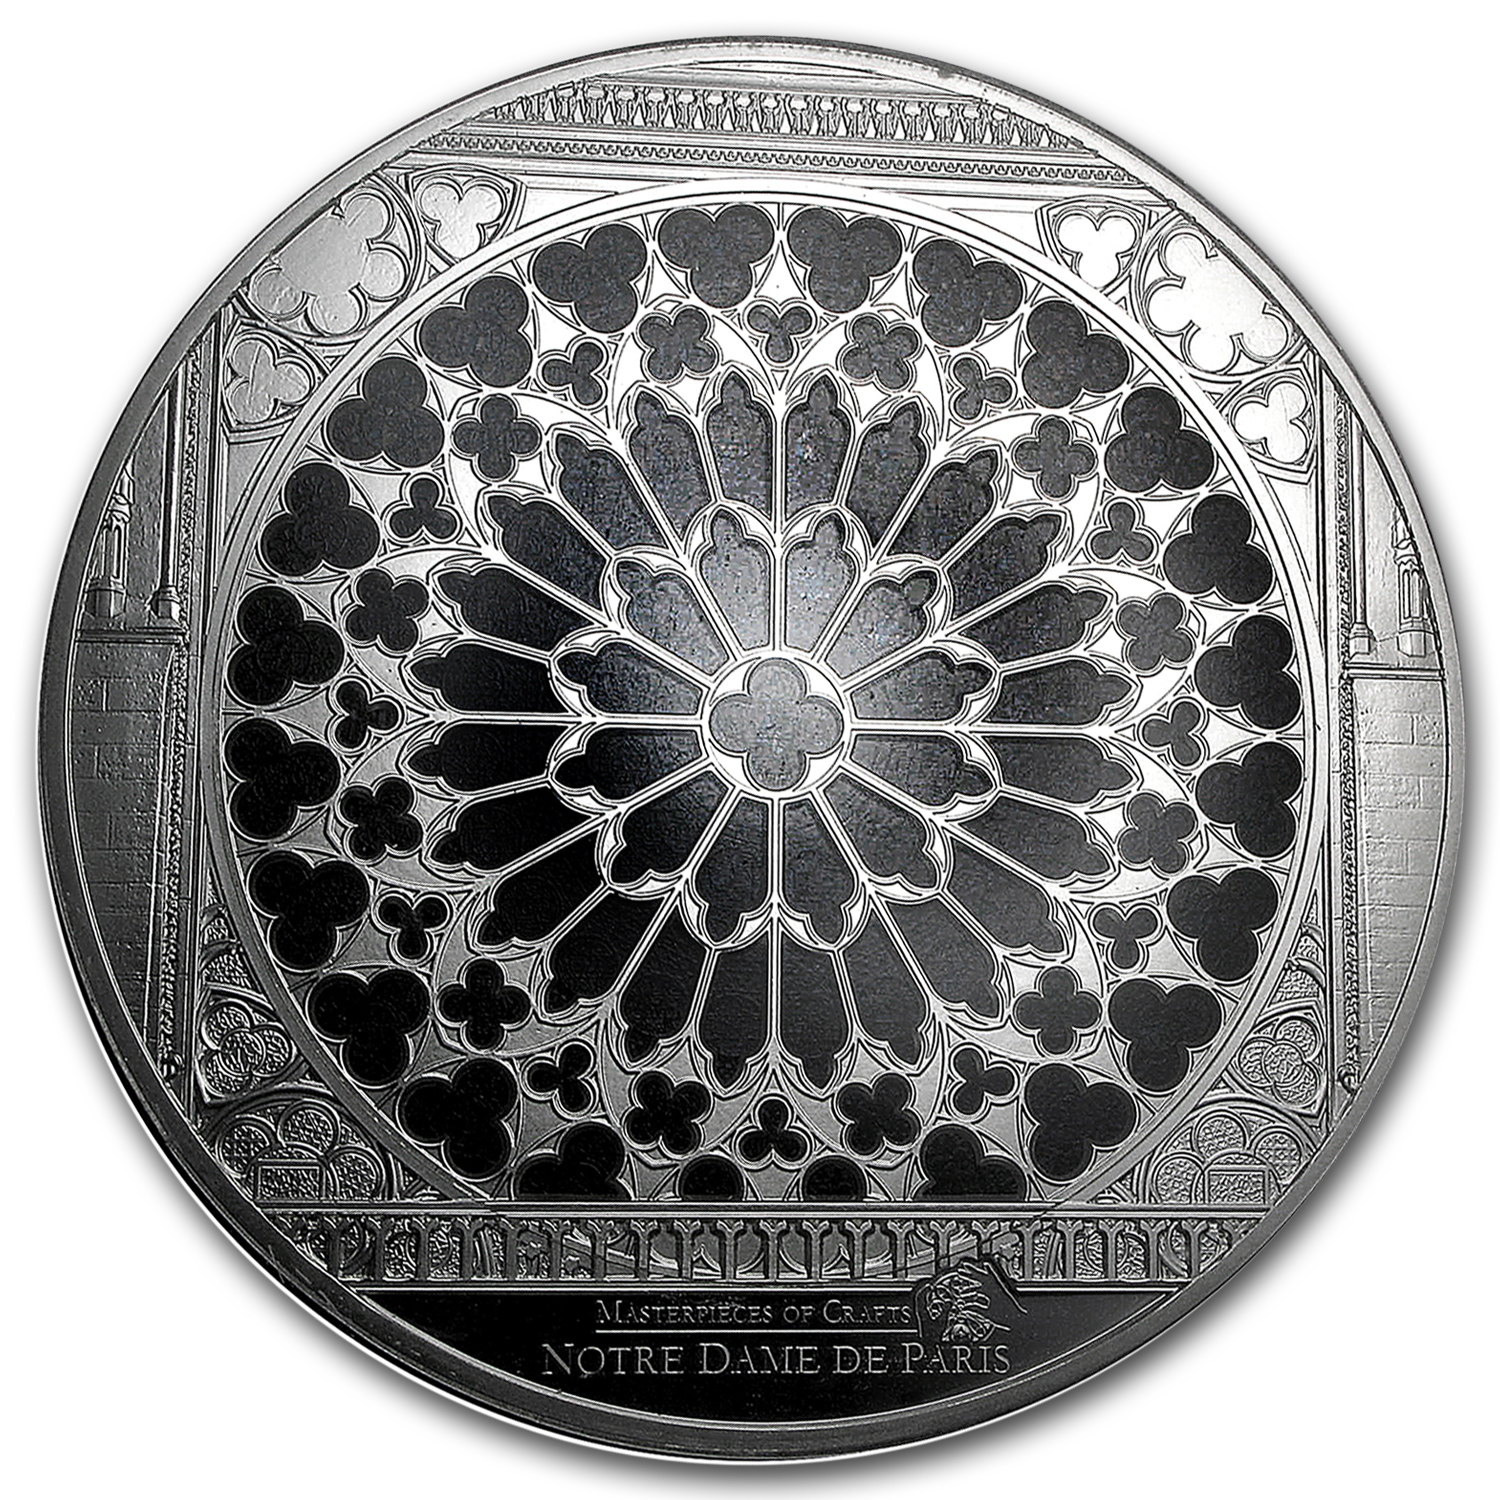 2015 Cook Islands 10 oz Silver Windows of Heaven Giant Notre Dame